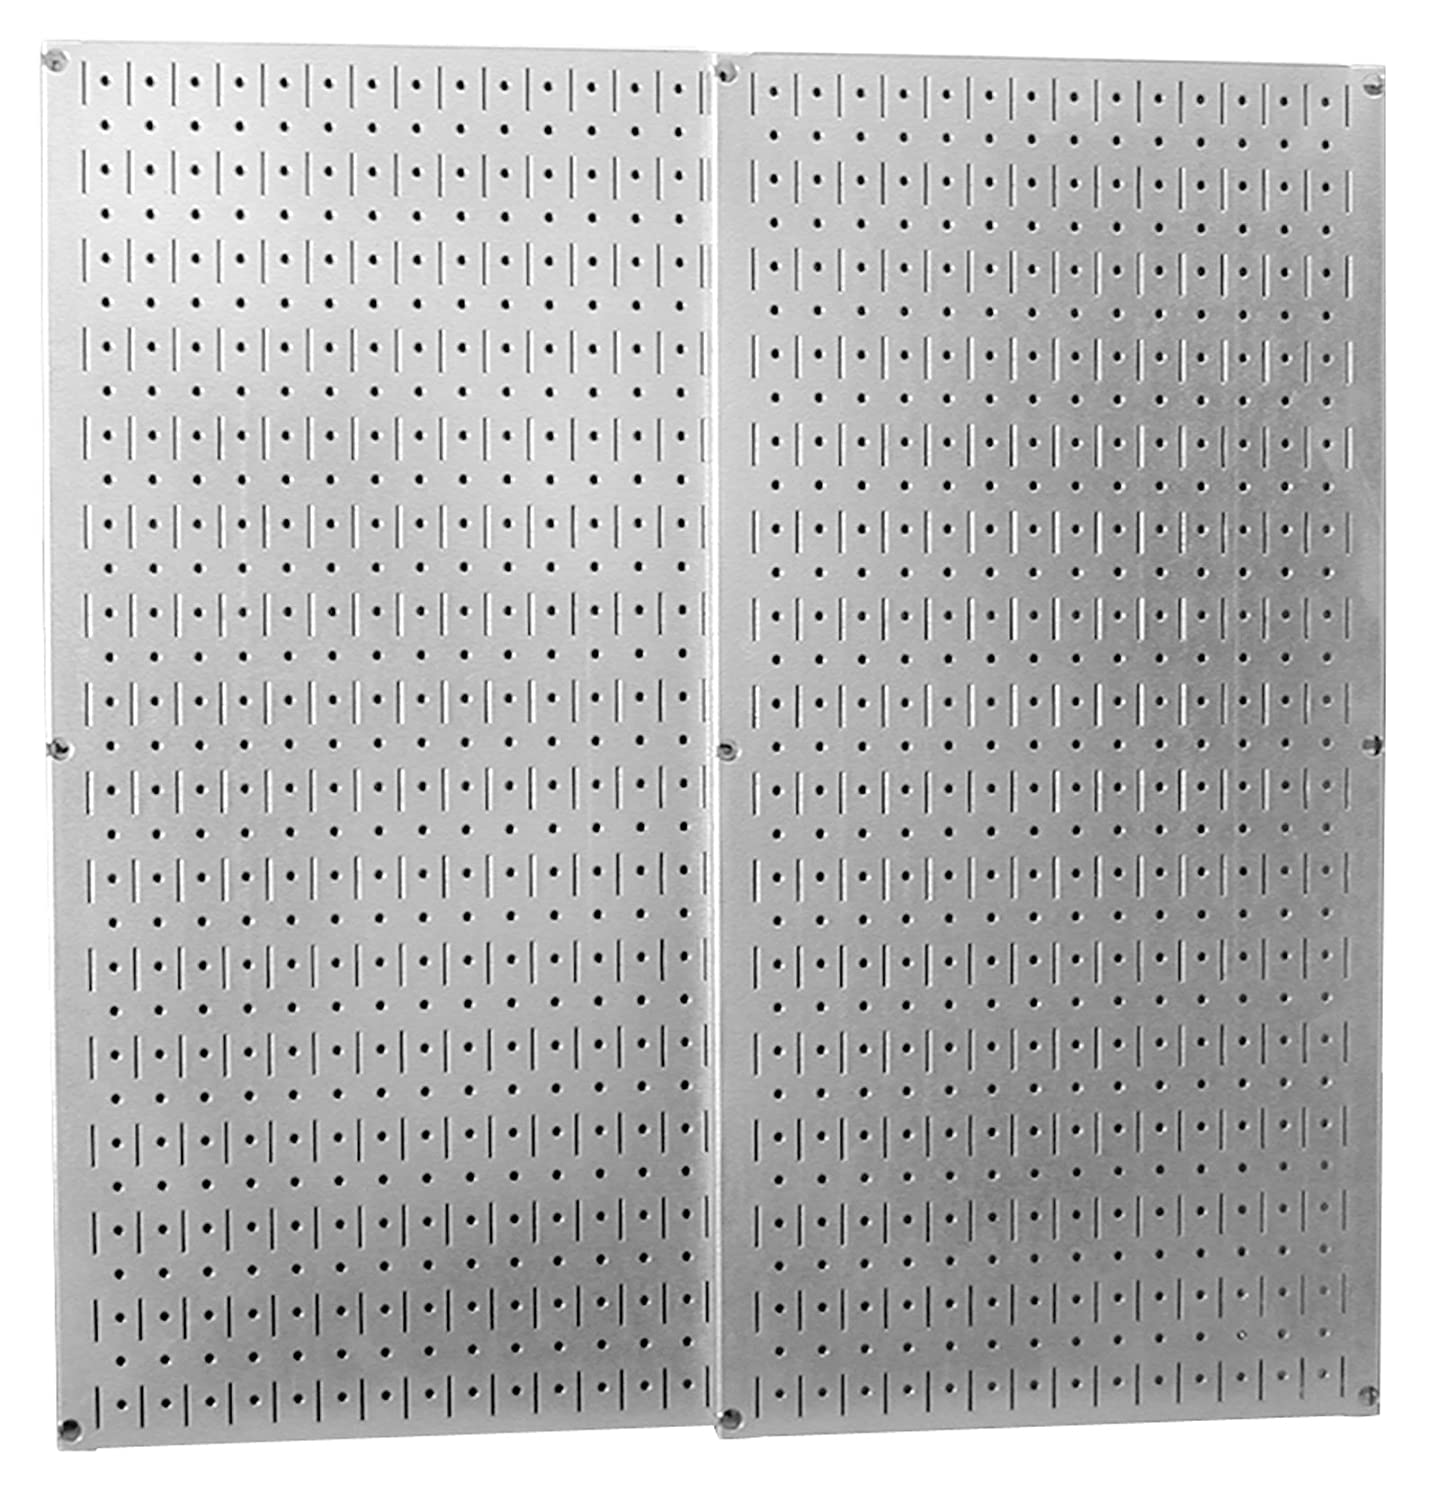 wall galvanized steel peg board organizer storage hook. Black Bedroom Furniture Sets. Home Design Ideas